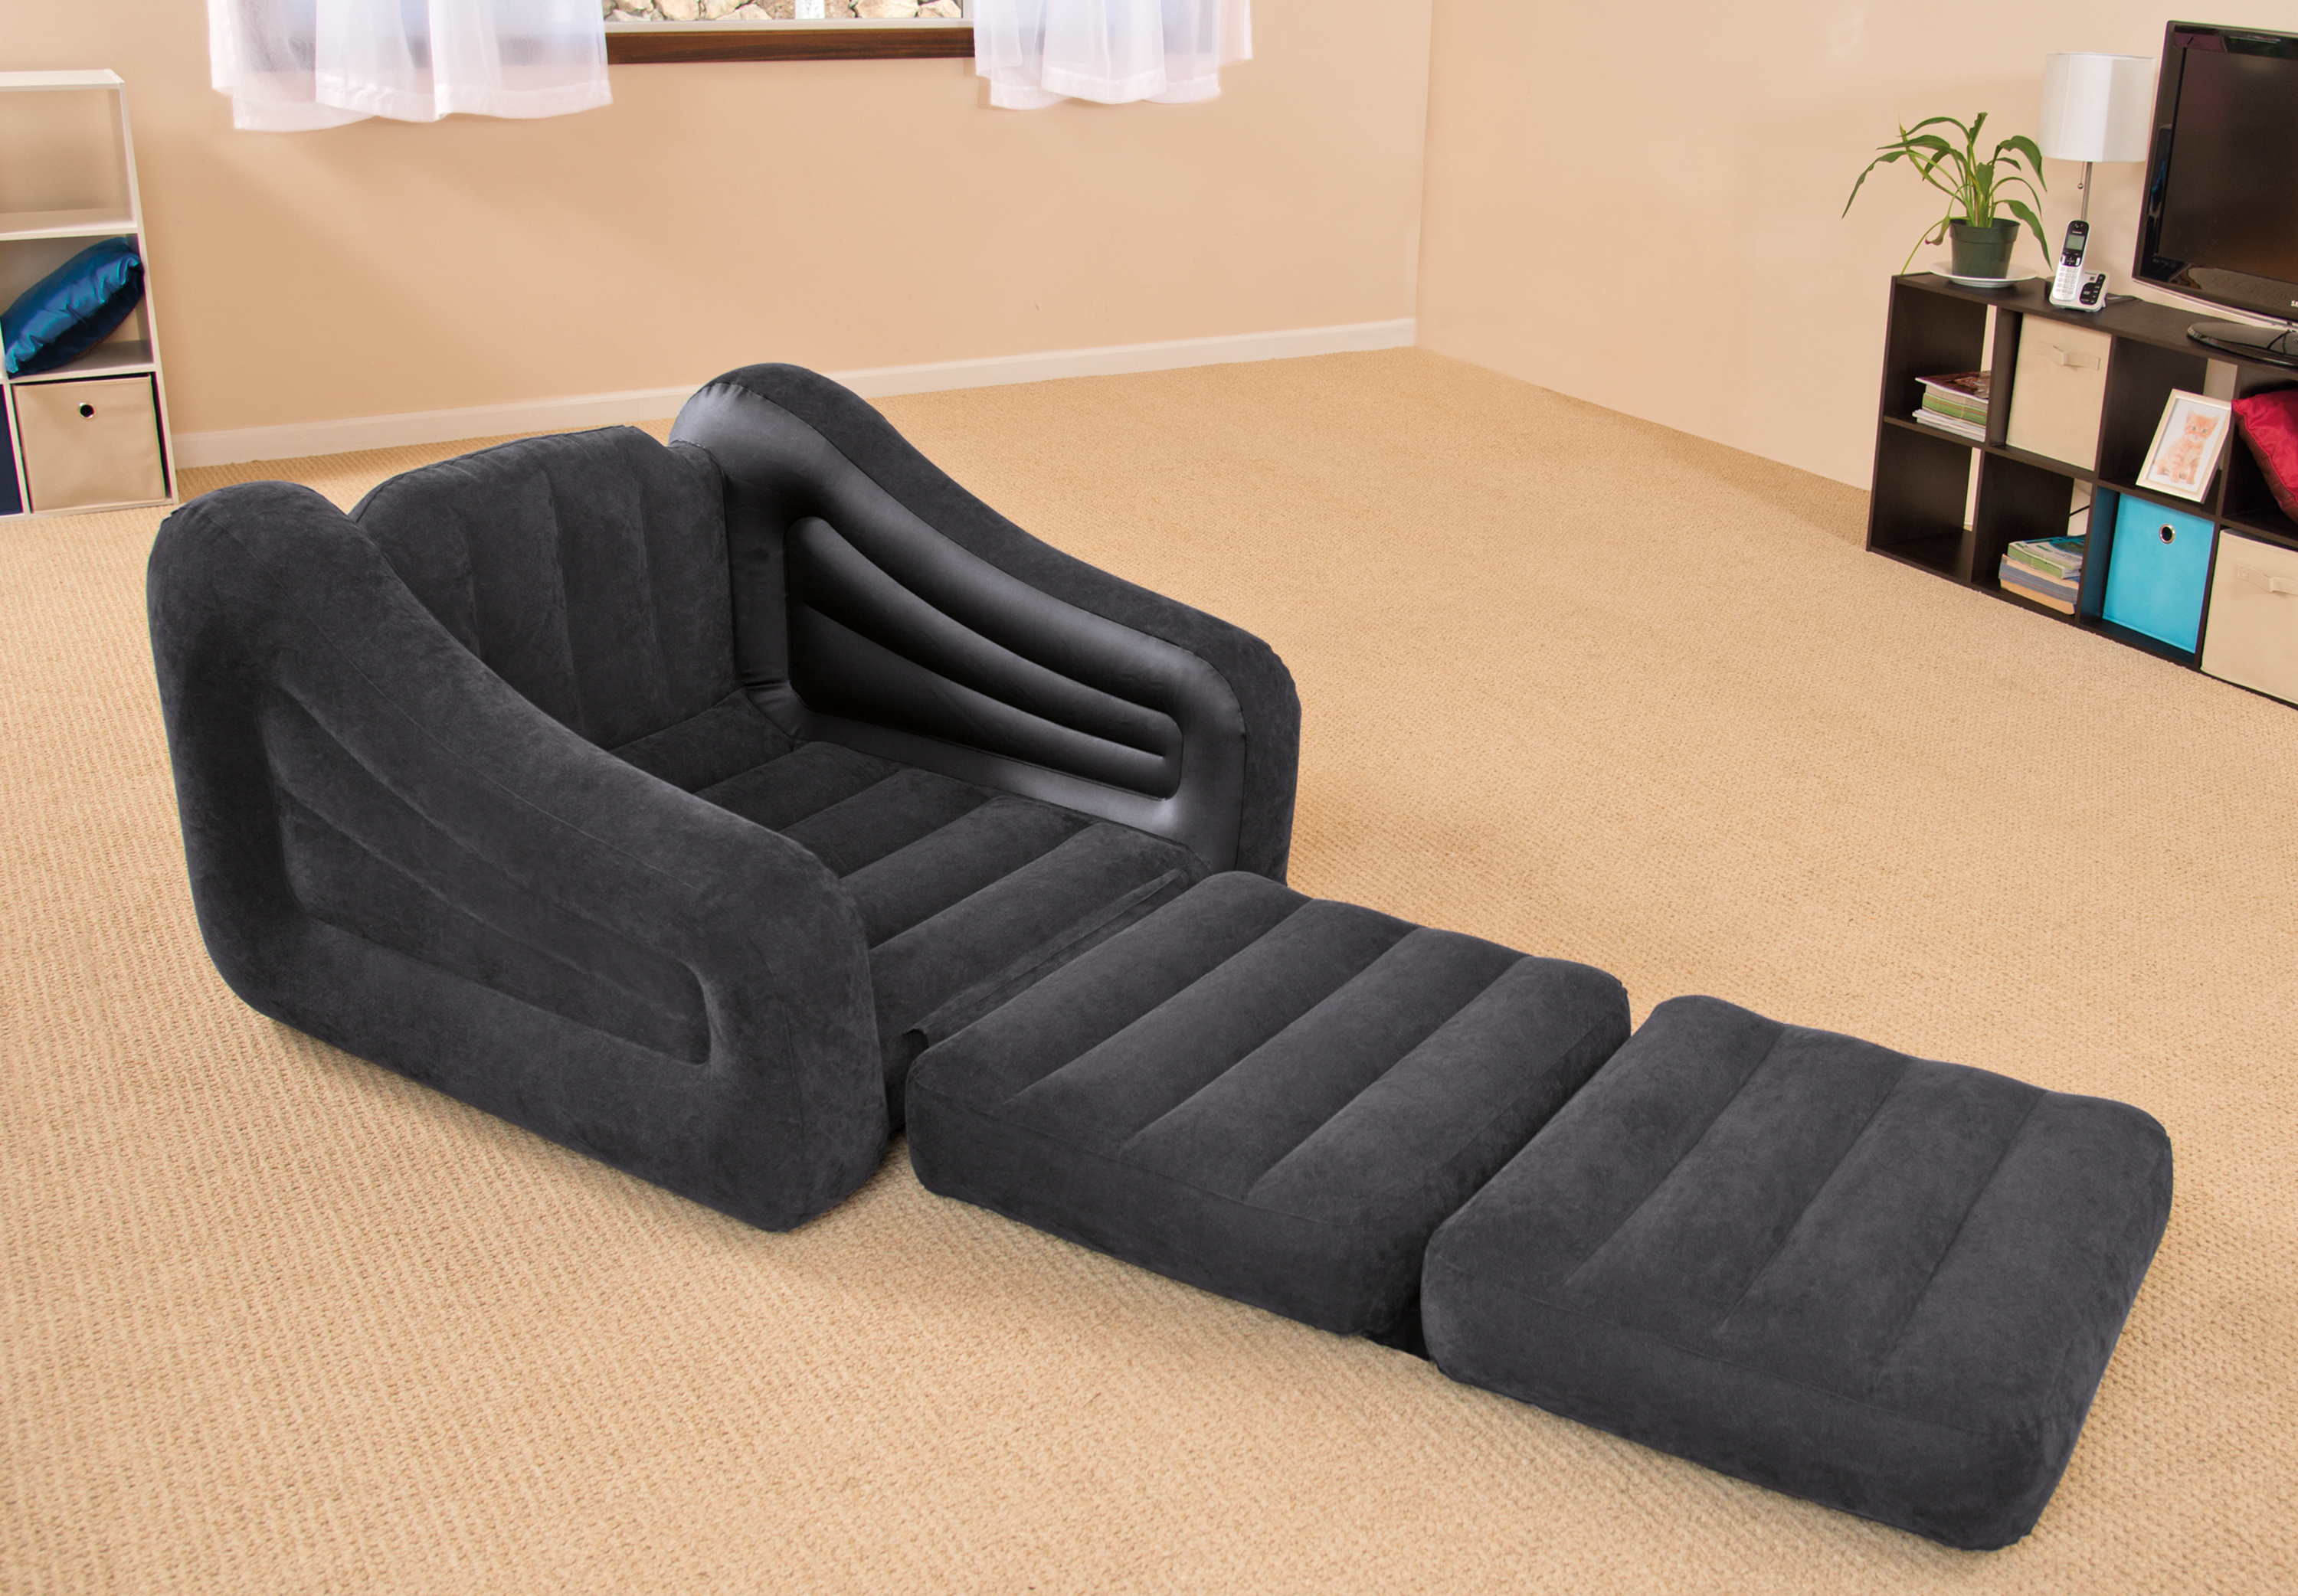 Intex Inflatable Air Chair With Pull Out Twin Bed Mattress